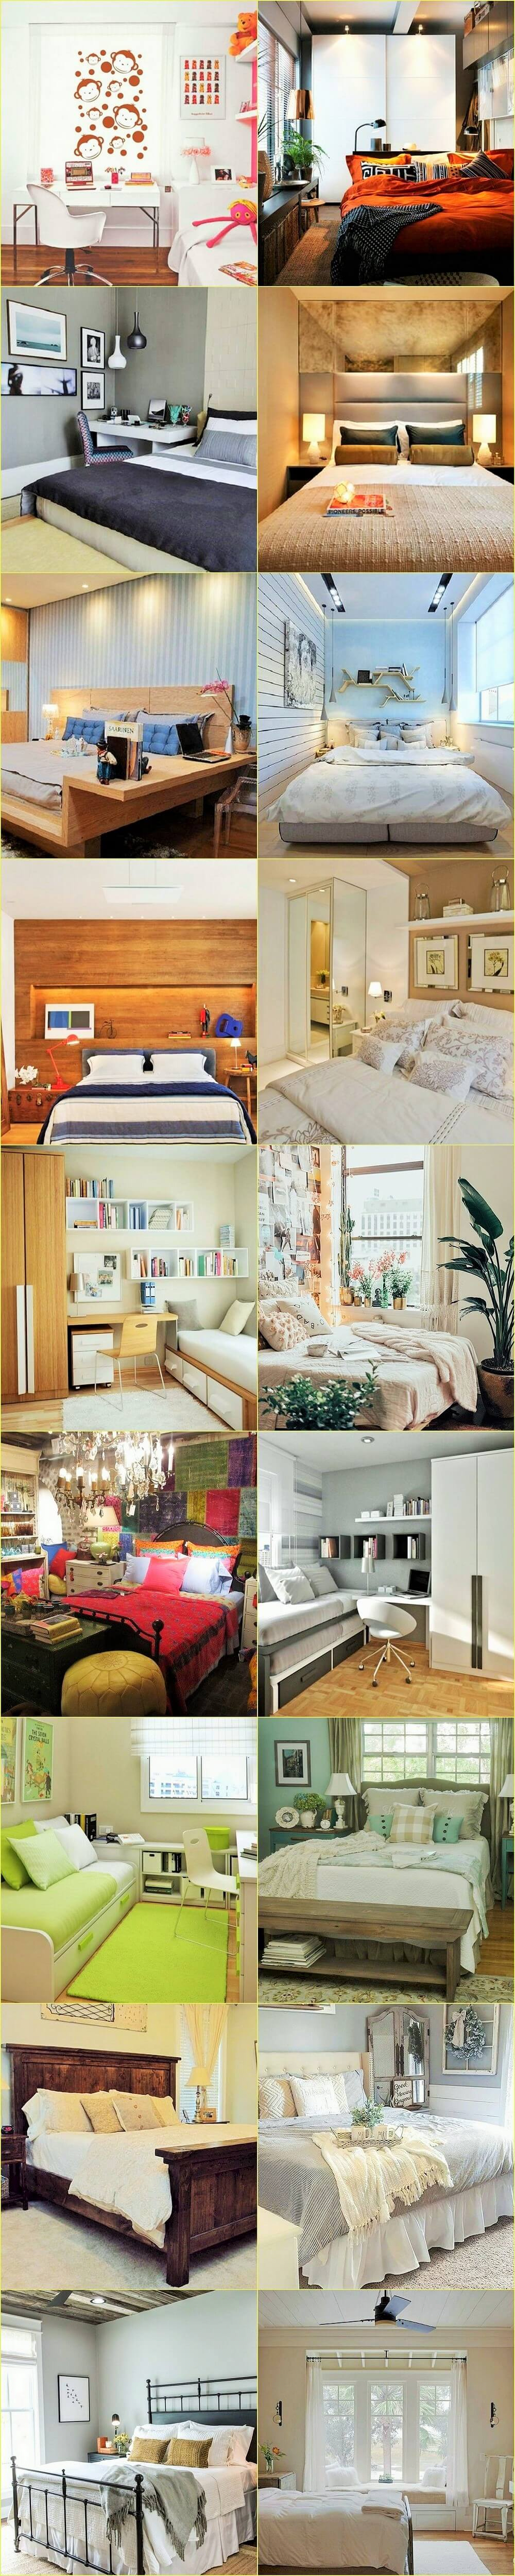 Bedroom-decorating-with-amazing-along-with-interesting-Ideas (3)